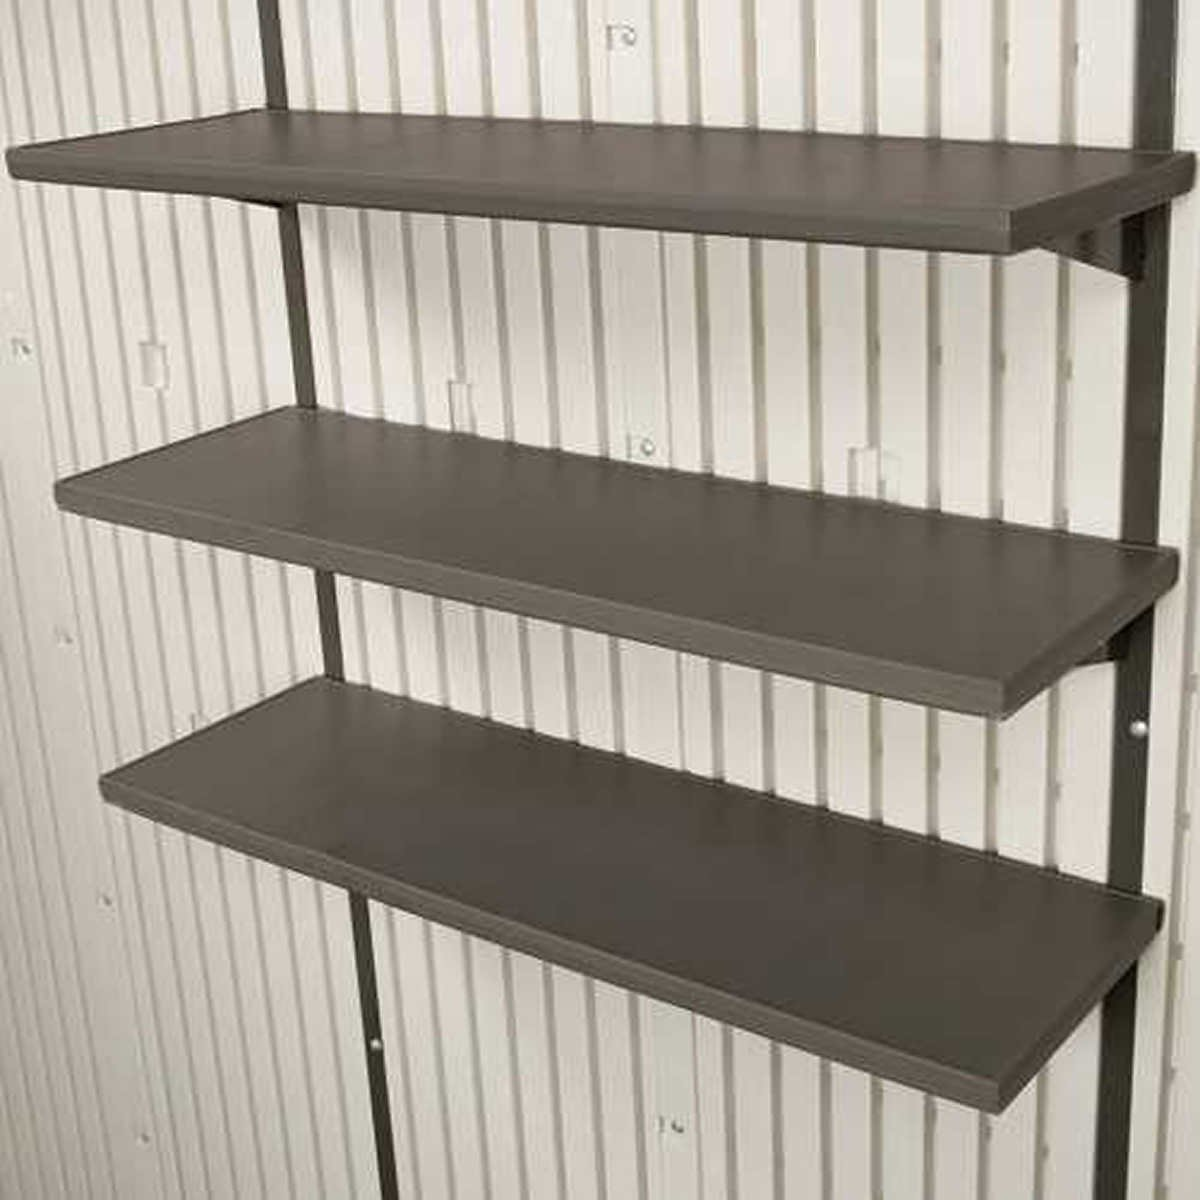 3 Piece 30in Shelf Storage Shed Accessory Kit